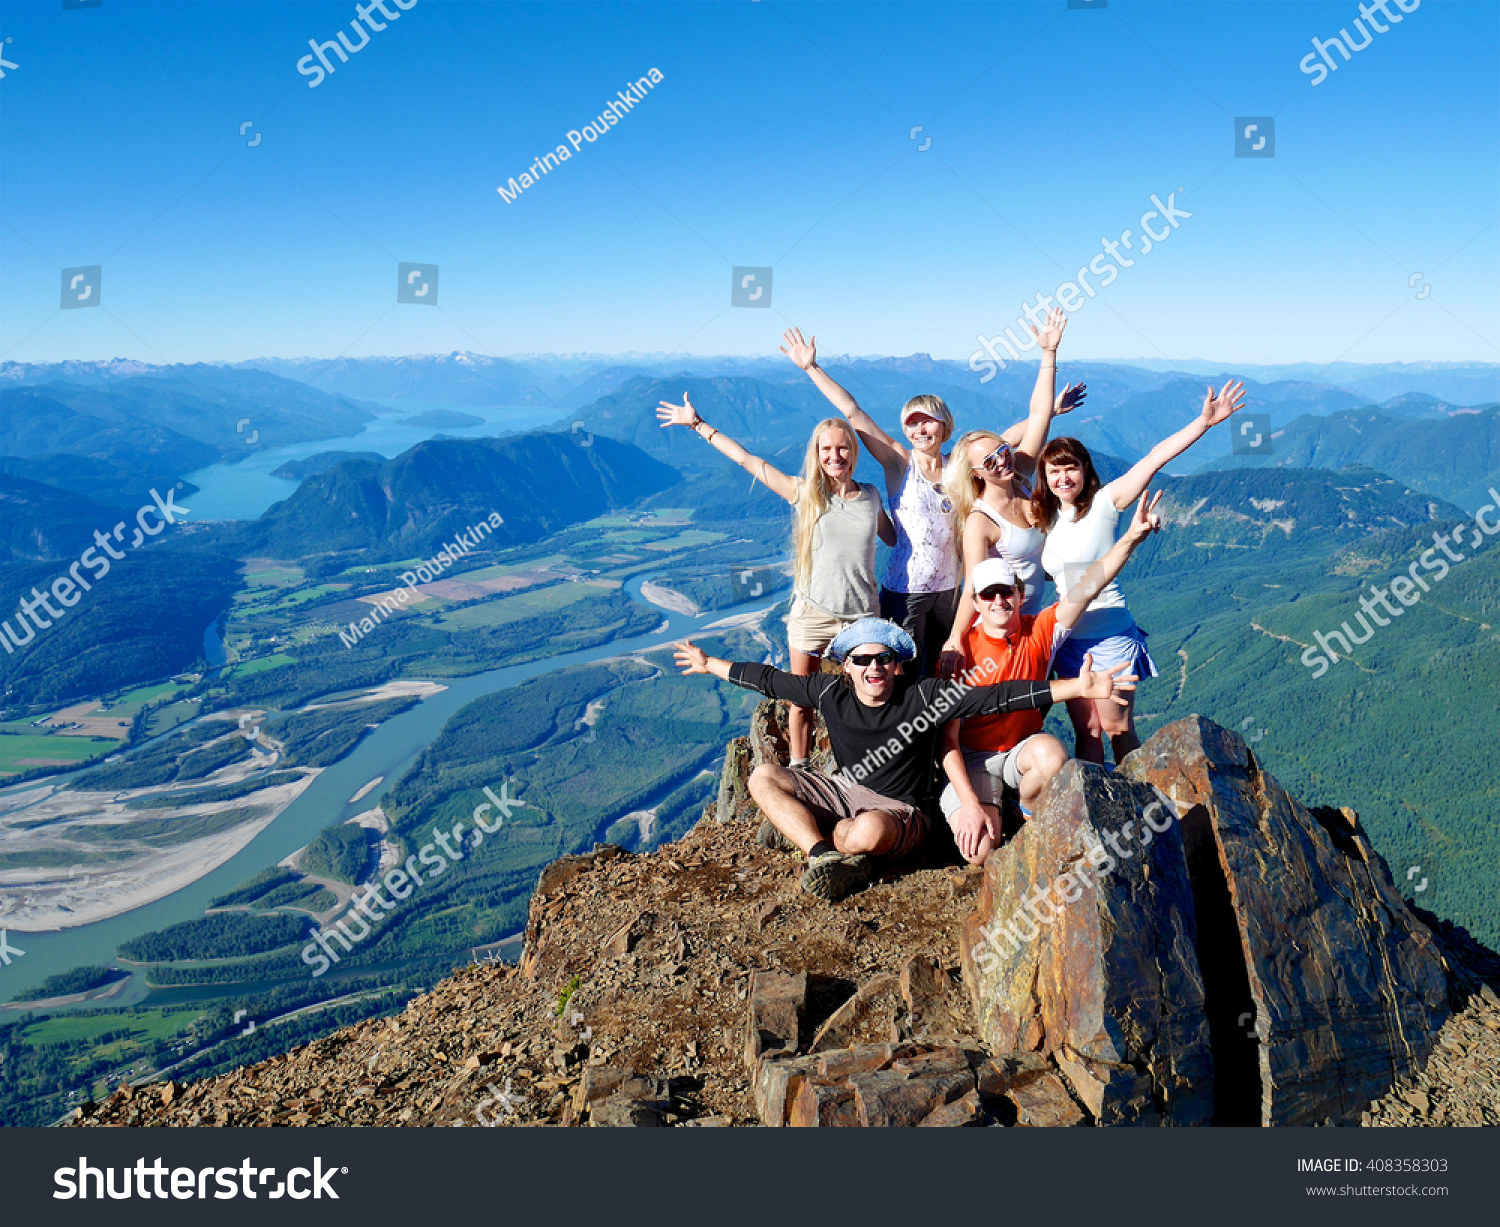 Successful Group of Happy Friends on Mountain Top, Cheering.  Mount Cheam Summit,  British Columbia, Canada.  #408358303